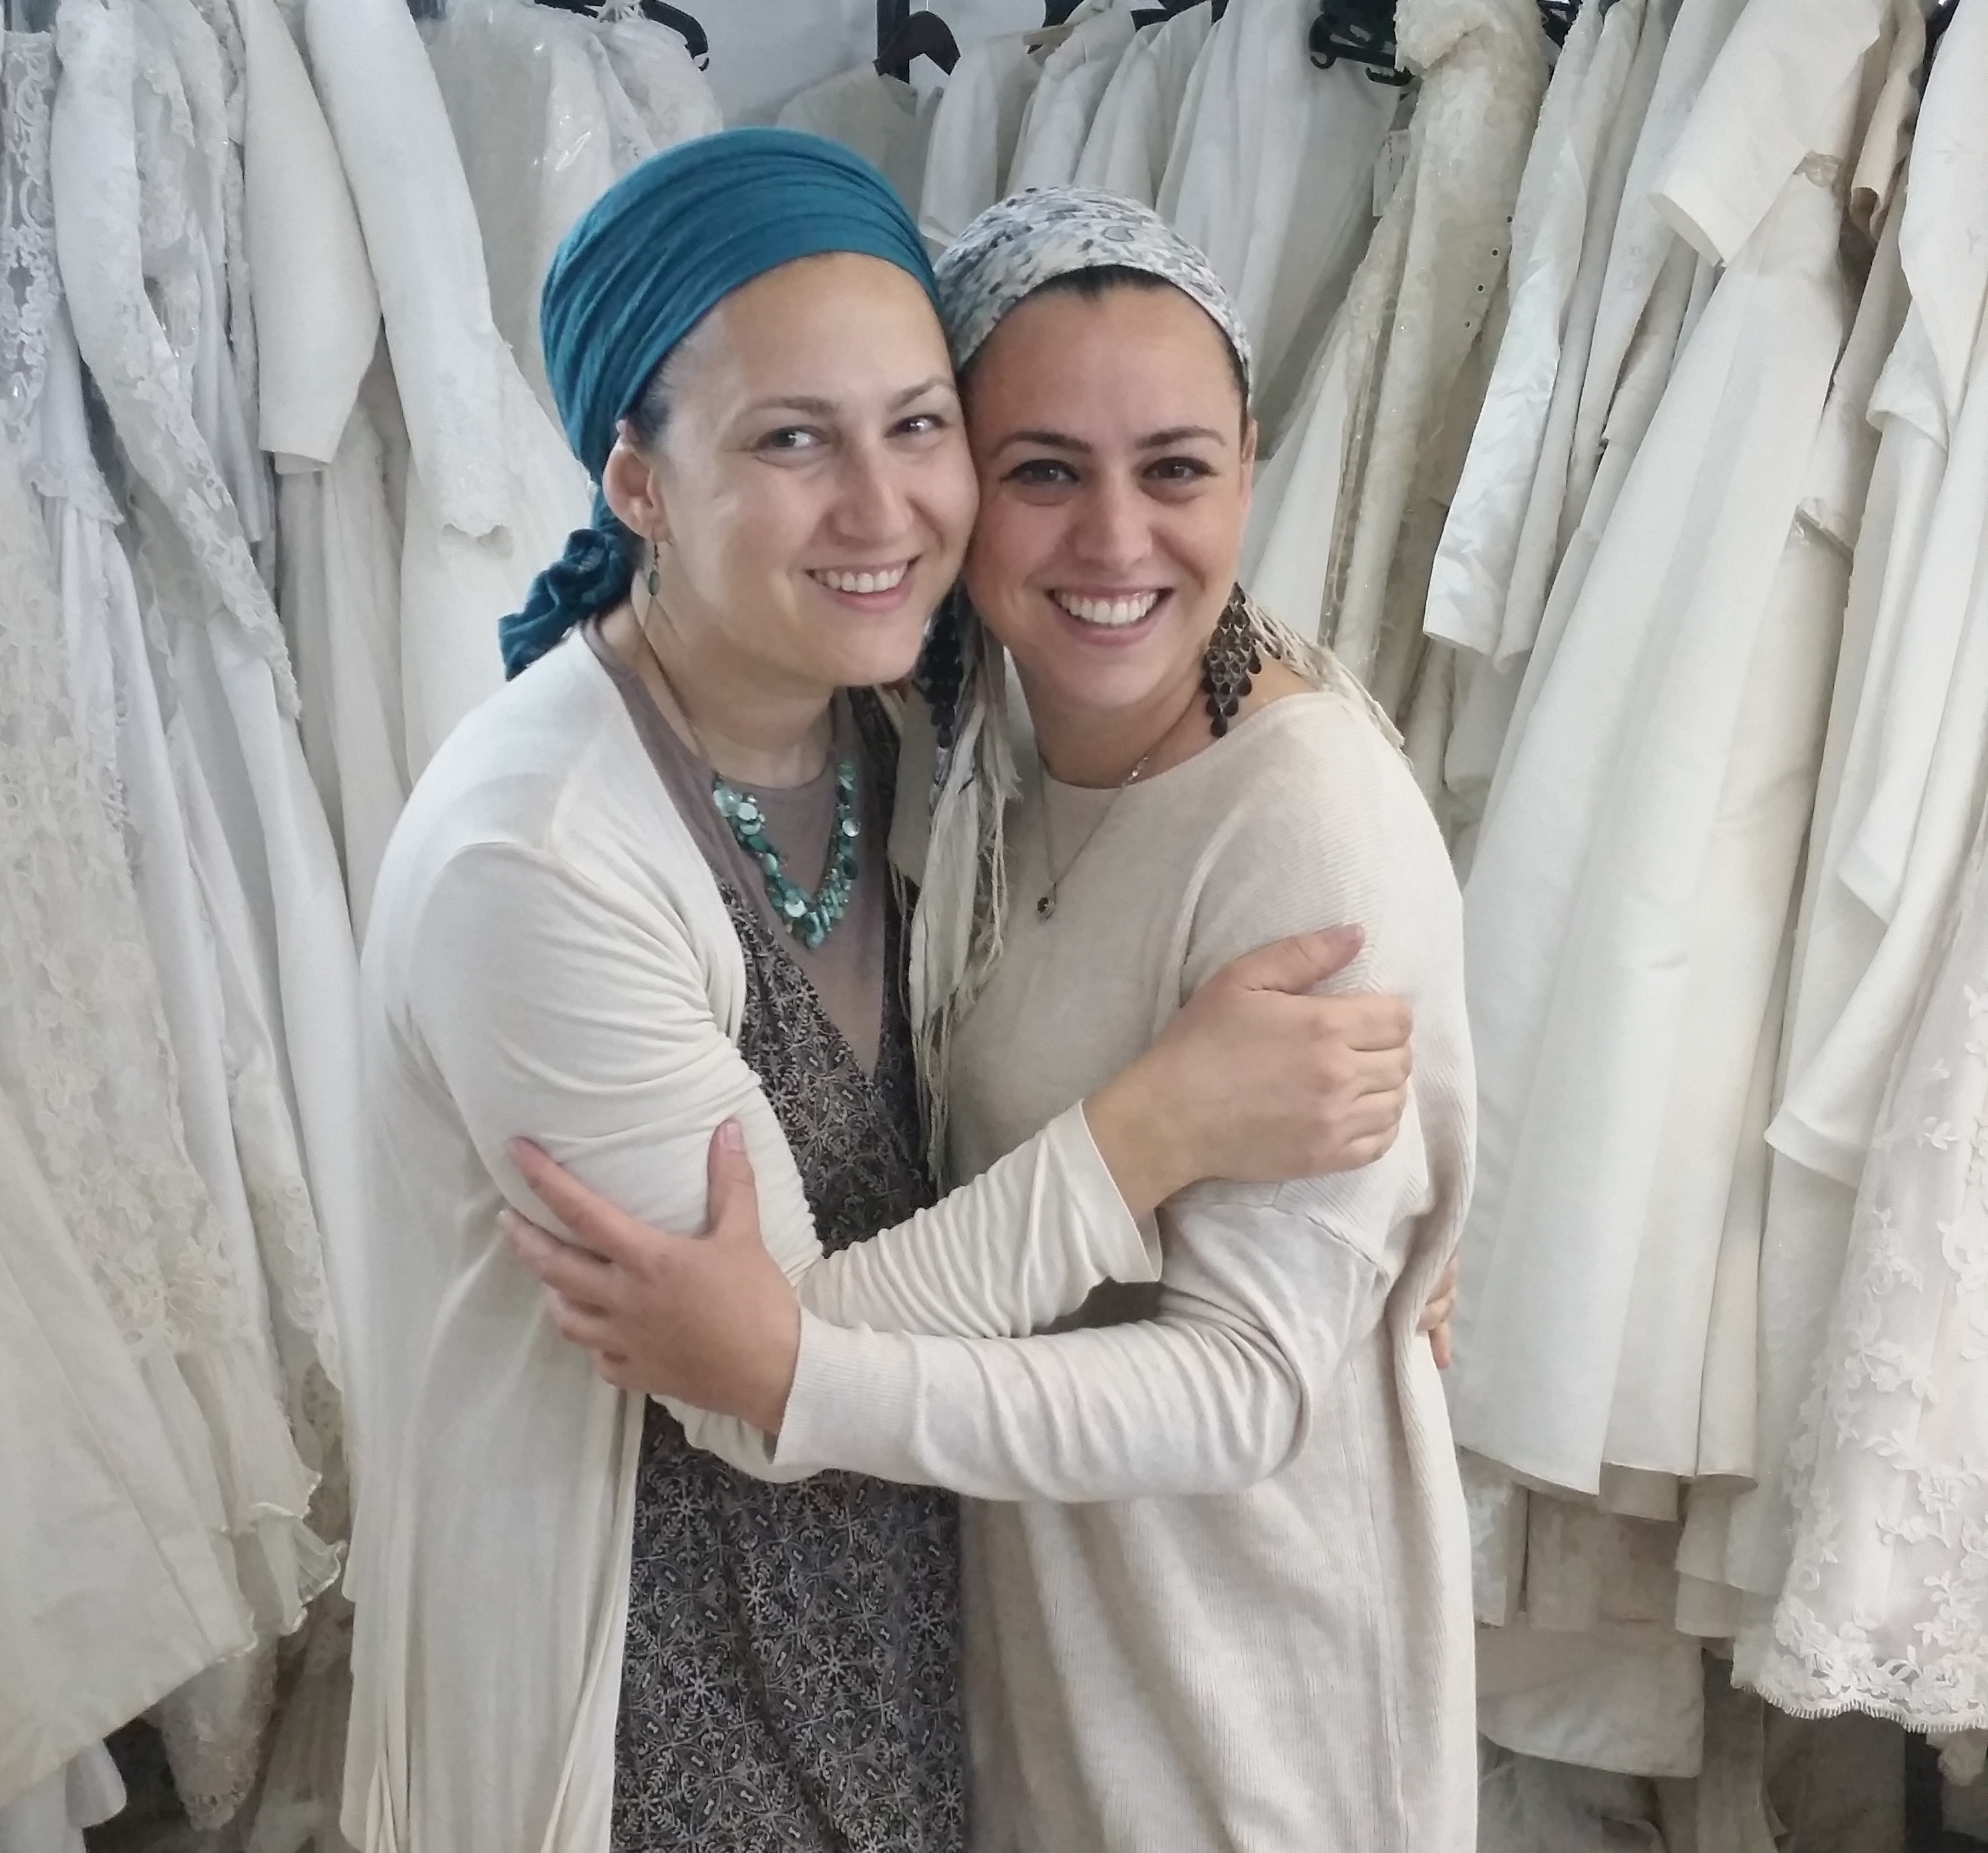 Sisterly Love in the Bridal Business